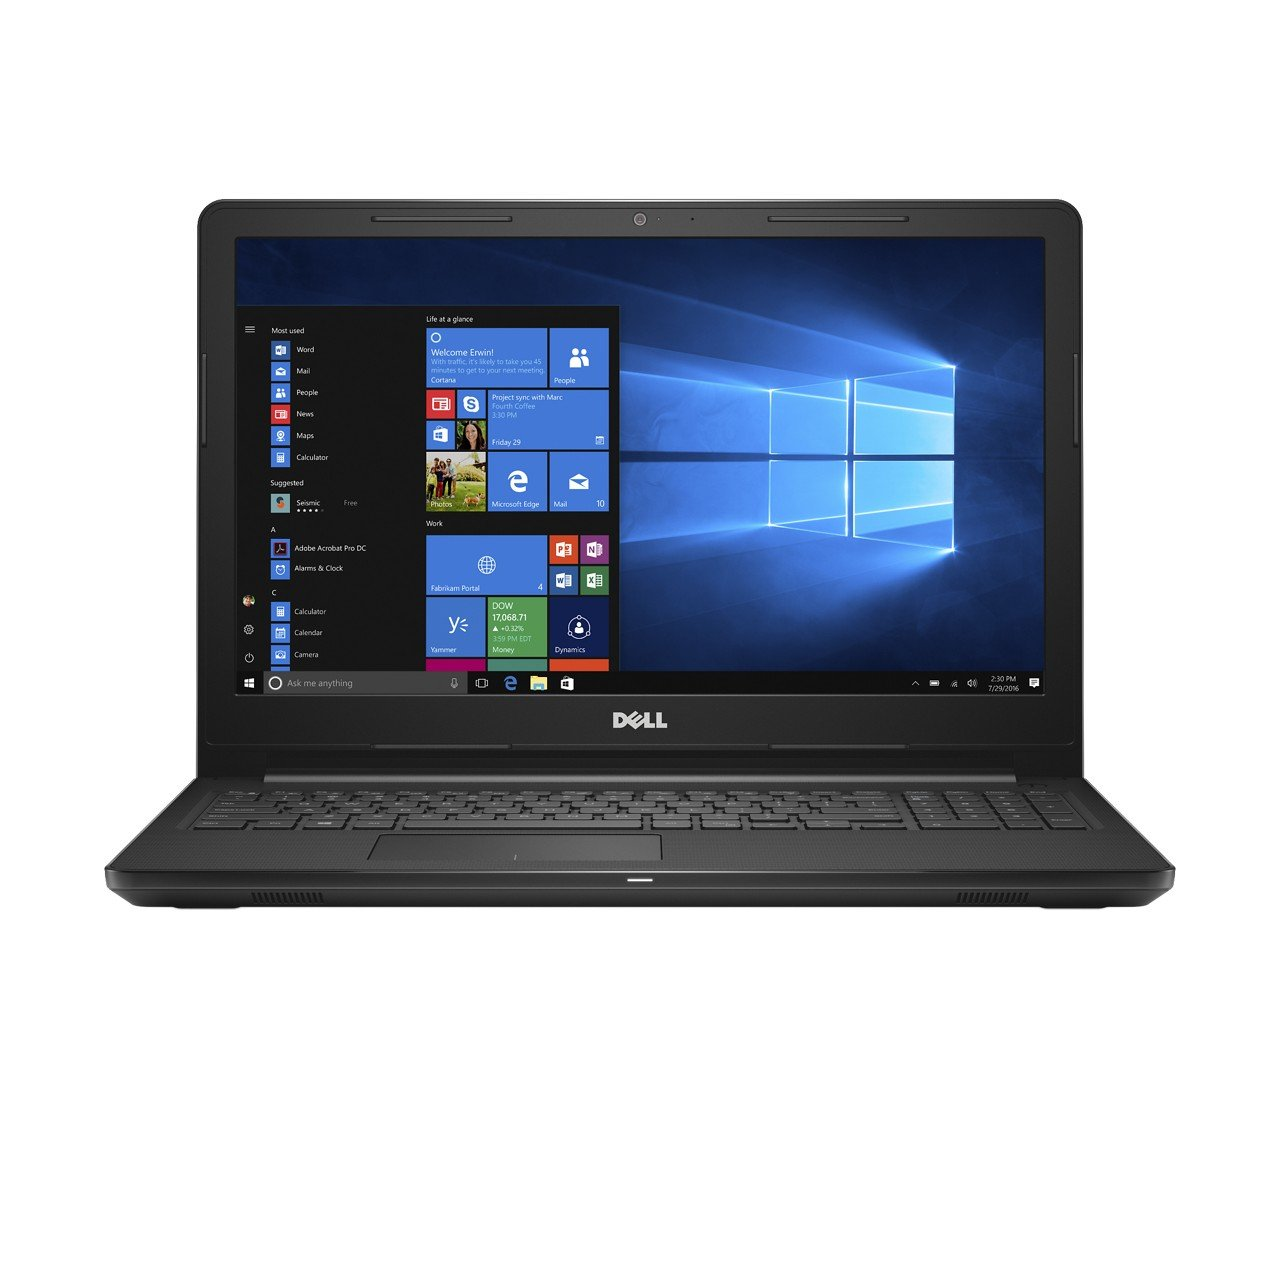 ab7f422c9 Amazon.in  Buy Dell Inspiron 3567 Intel Core i3 7th Gen 15.6-inch FHD Laptop  (4GB 1TB HDD Windows 10 Home MS Office Black 2.5kg) Online at Low Prices in  ...